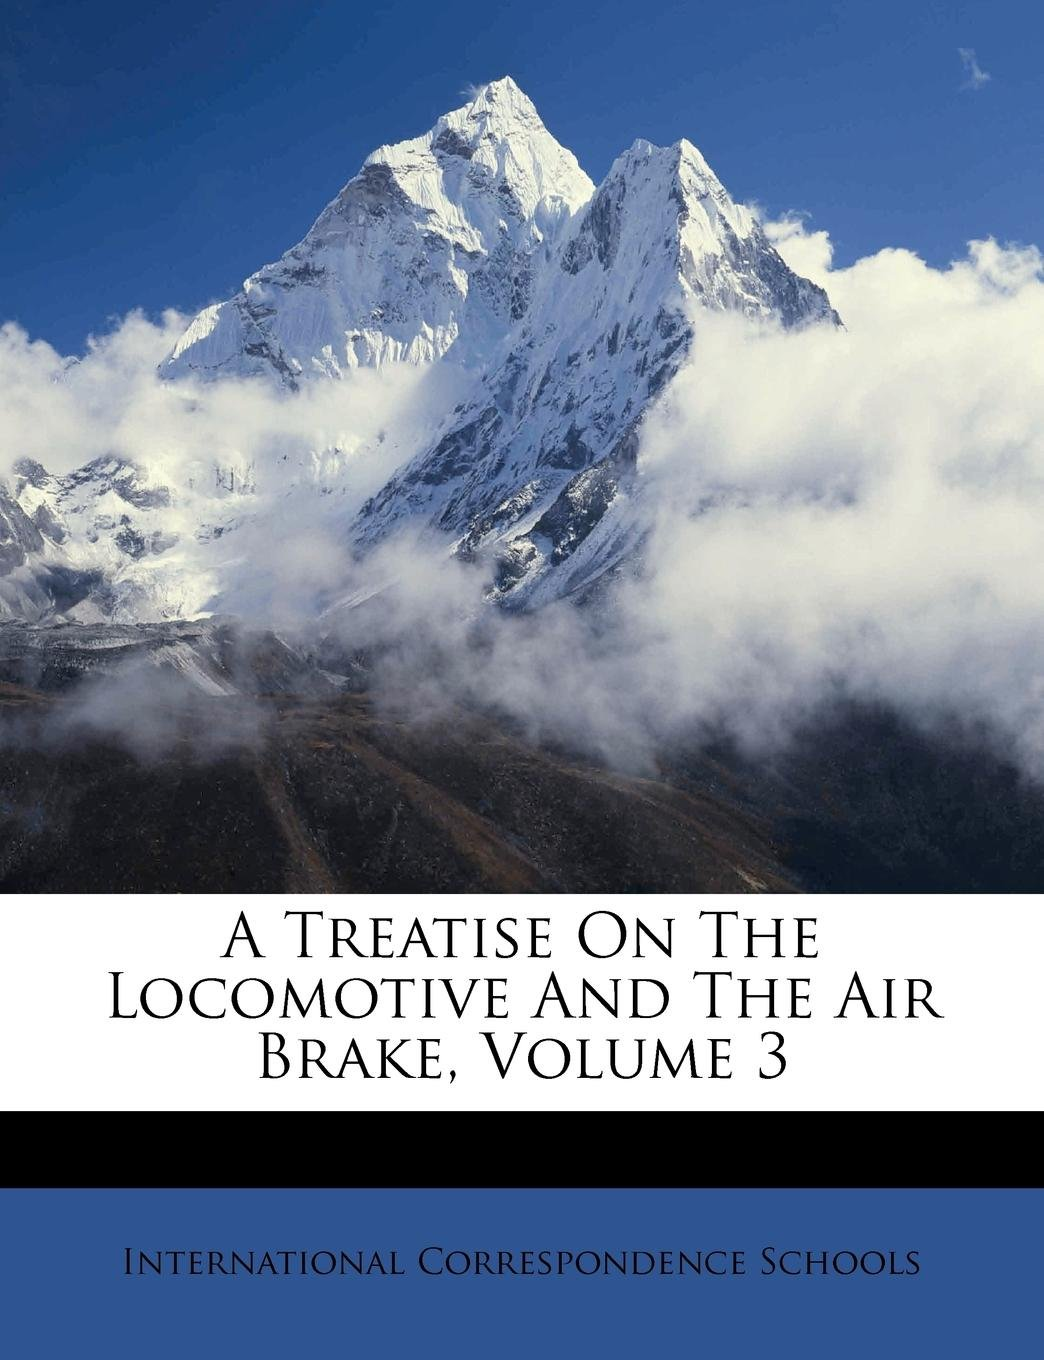 A Treatise On The Locomotive And The Air Brake, Volume 3 pdf